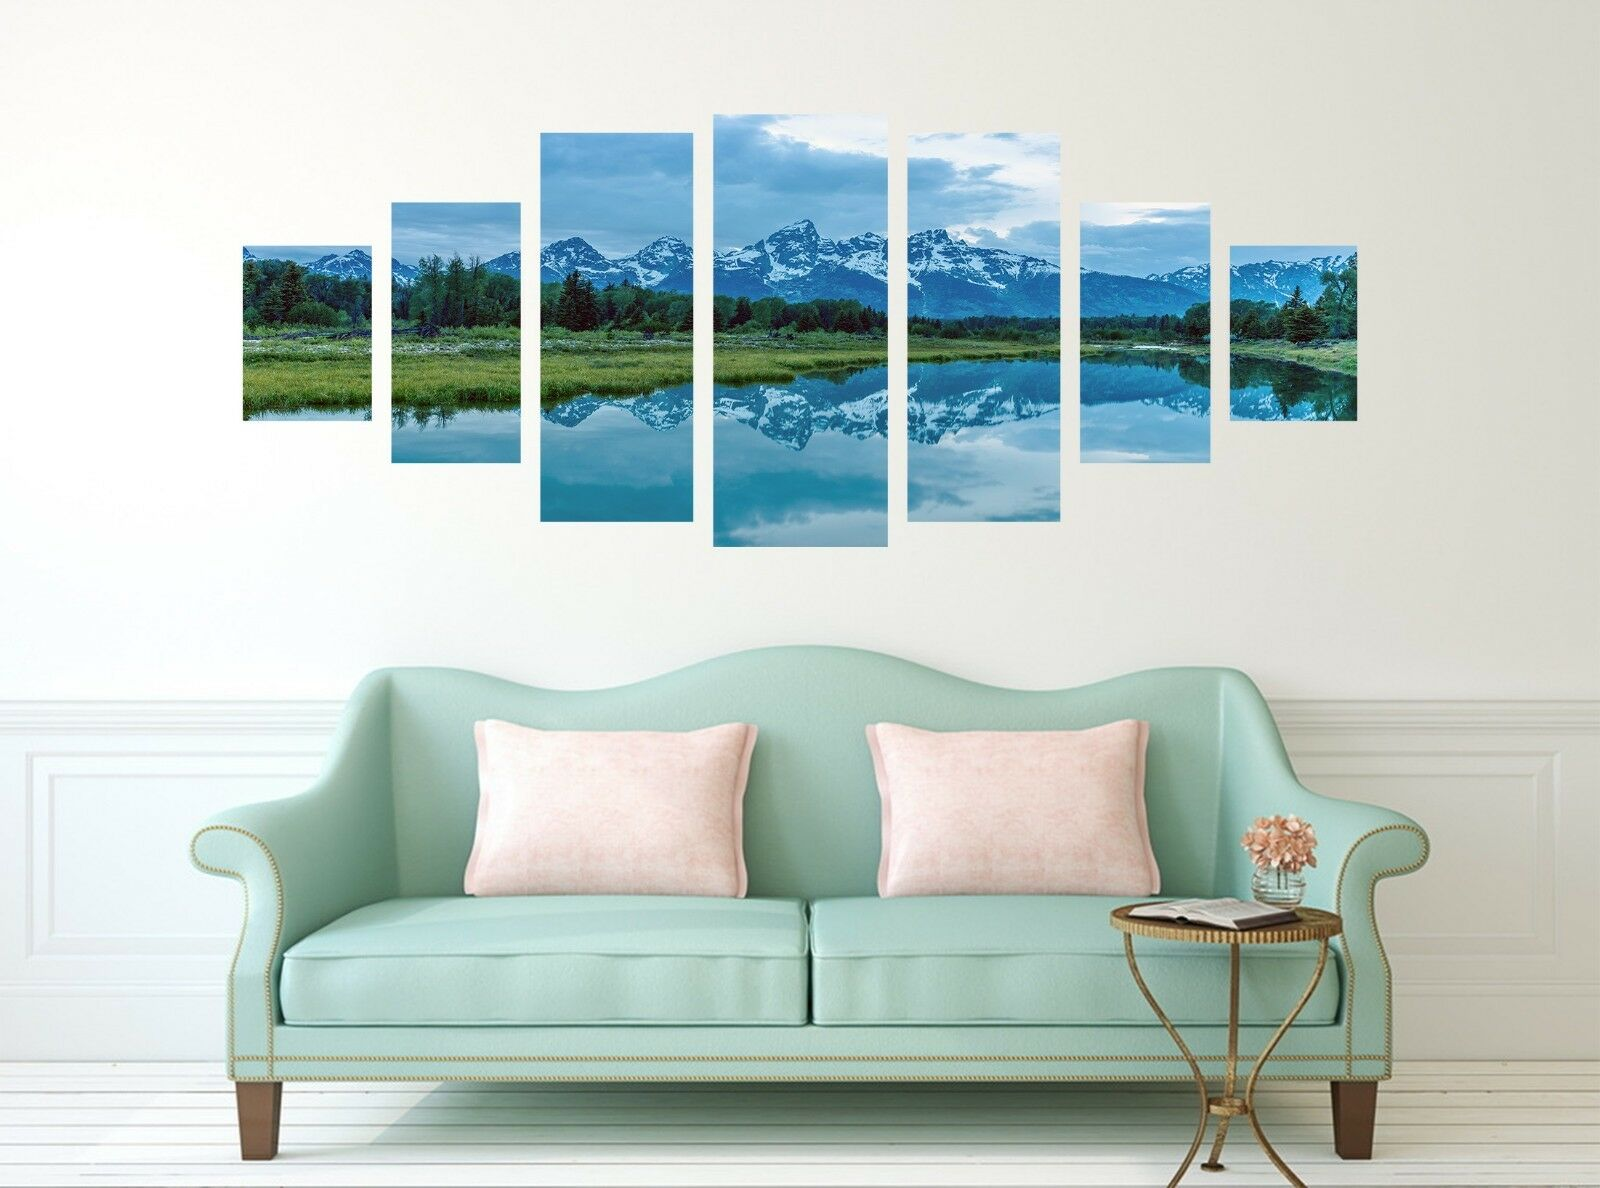 3D Hills Forest 78 Unframed Print Wall Paper Decal Wall Deco Indoor AJ Jenny